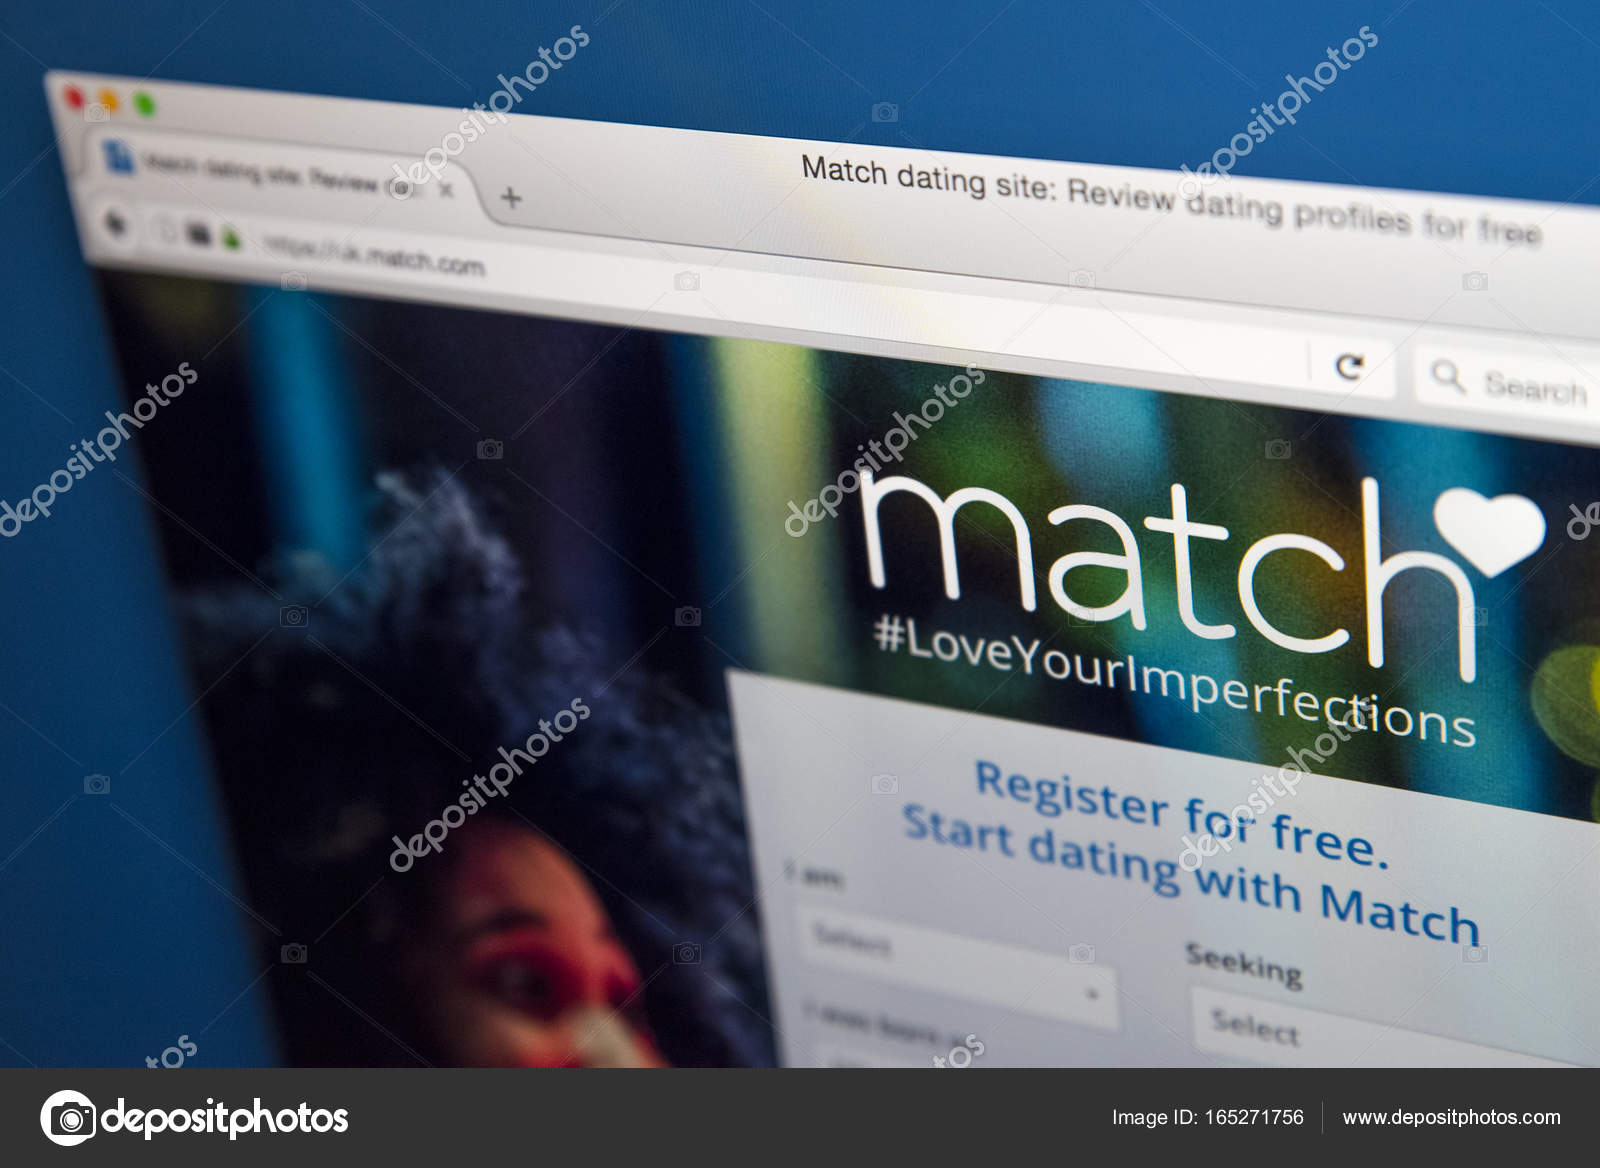 match.com dating service